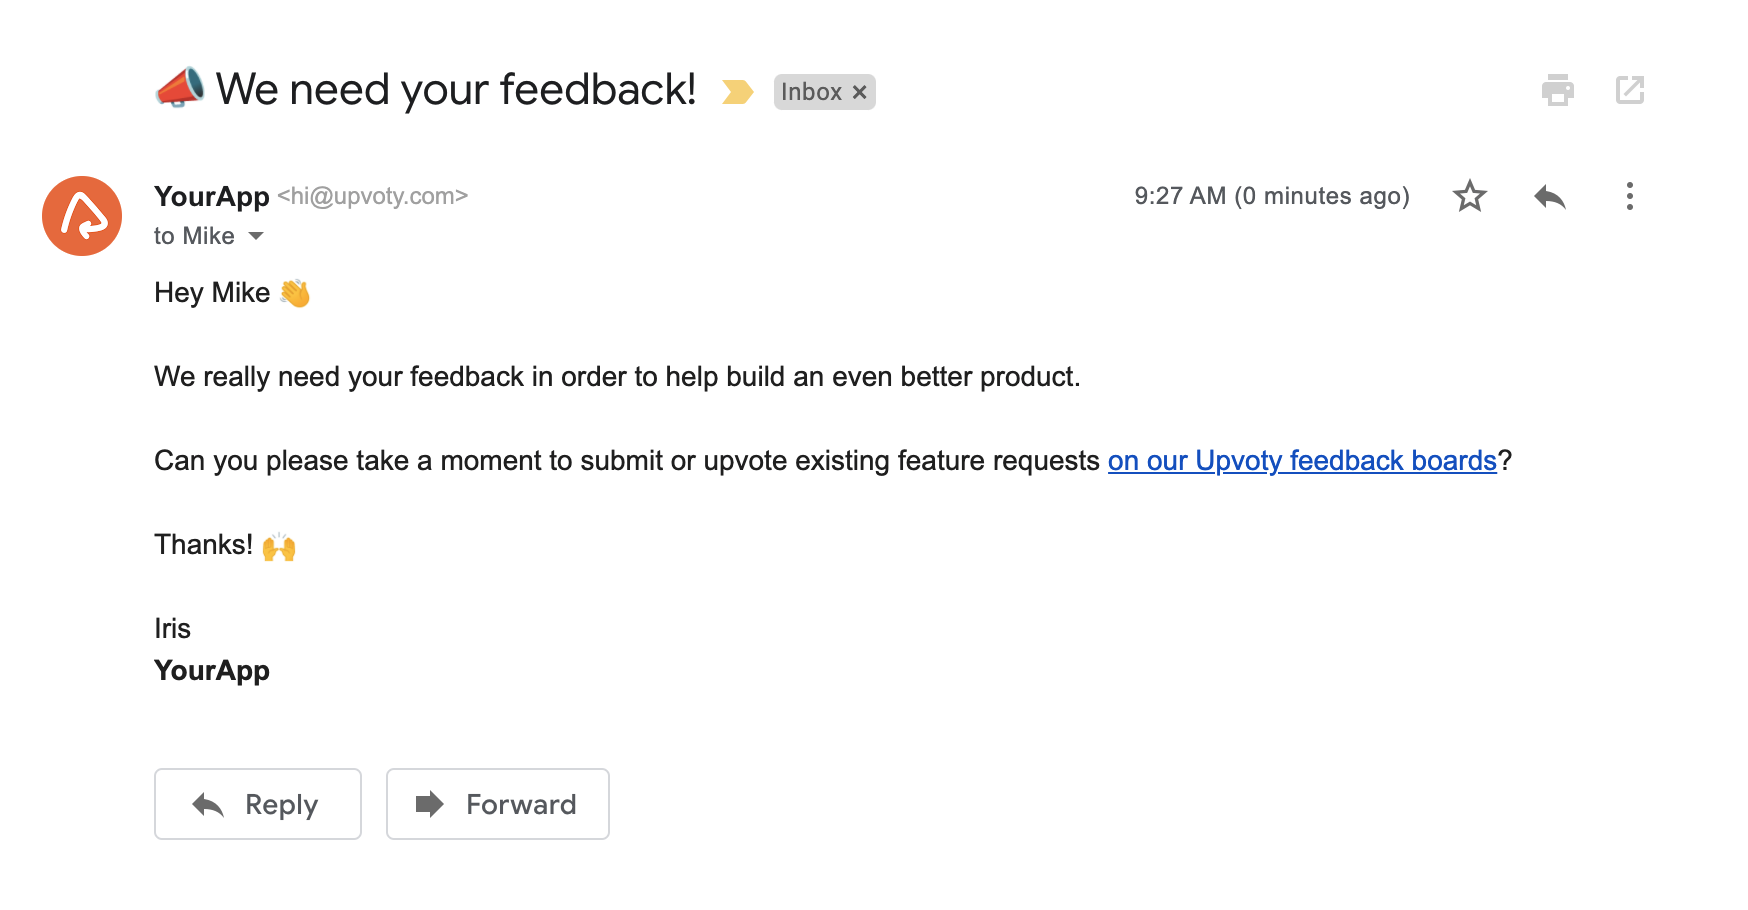 Feedback email subject